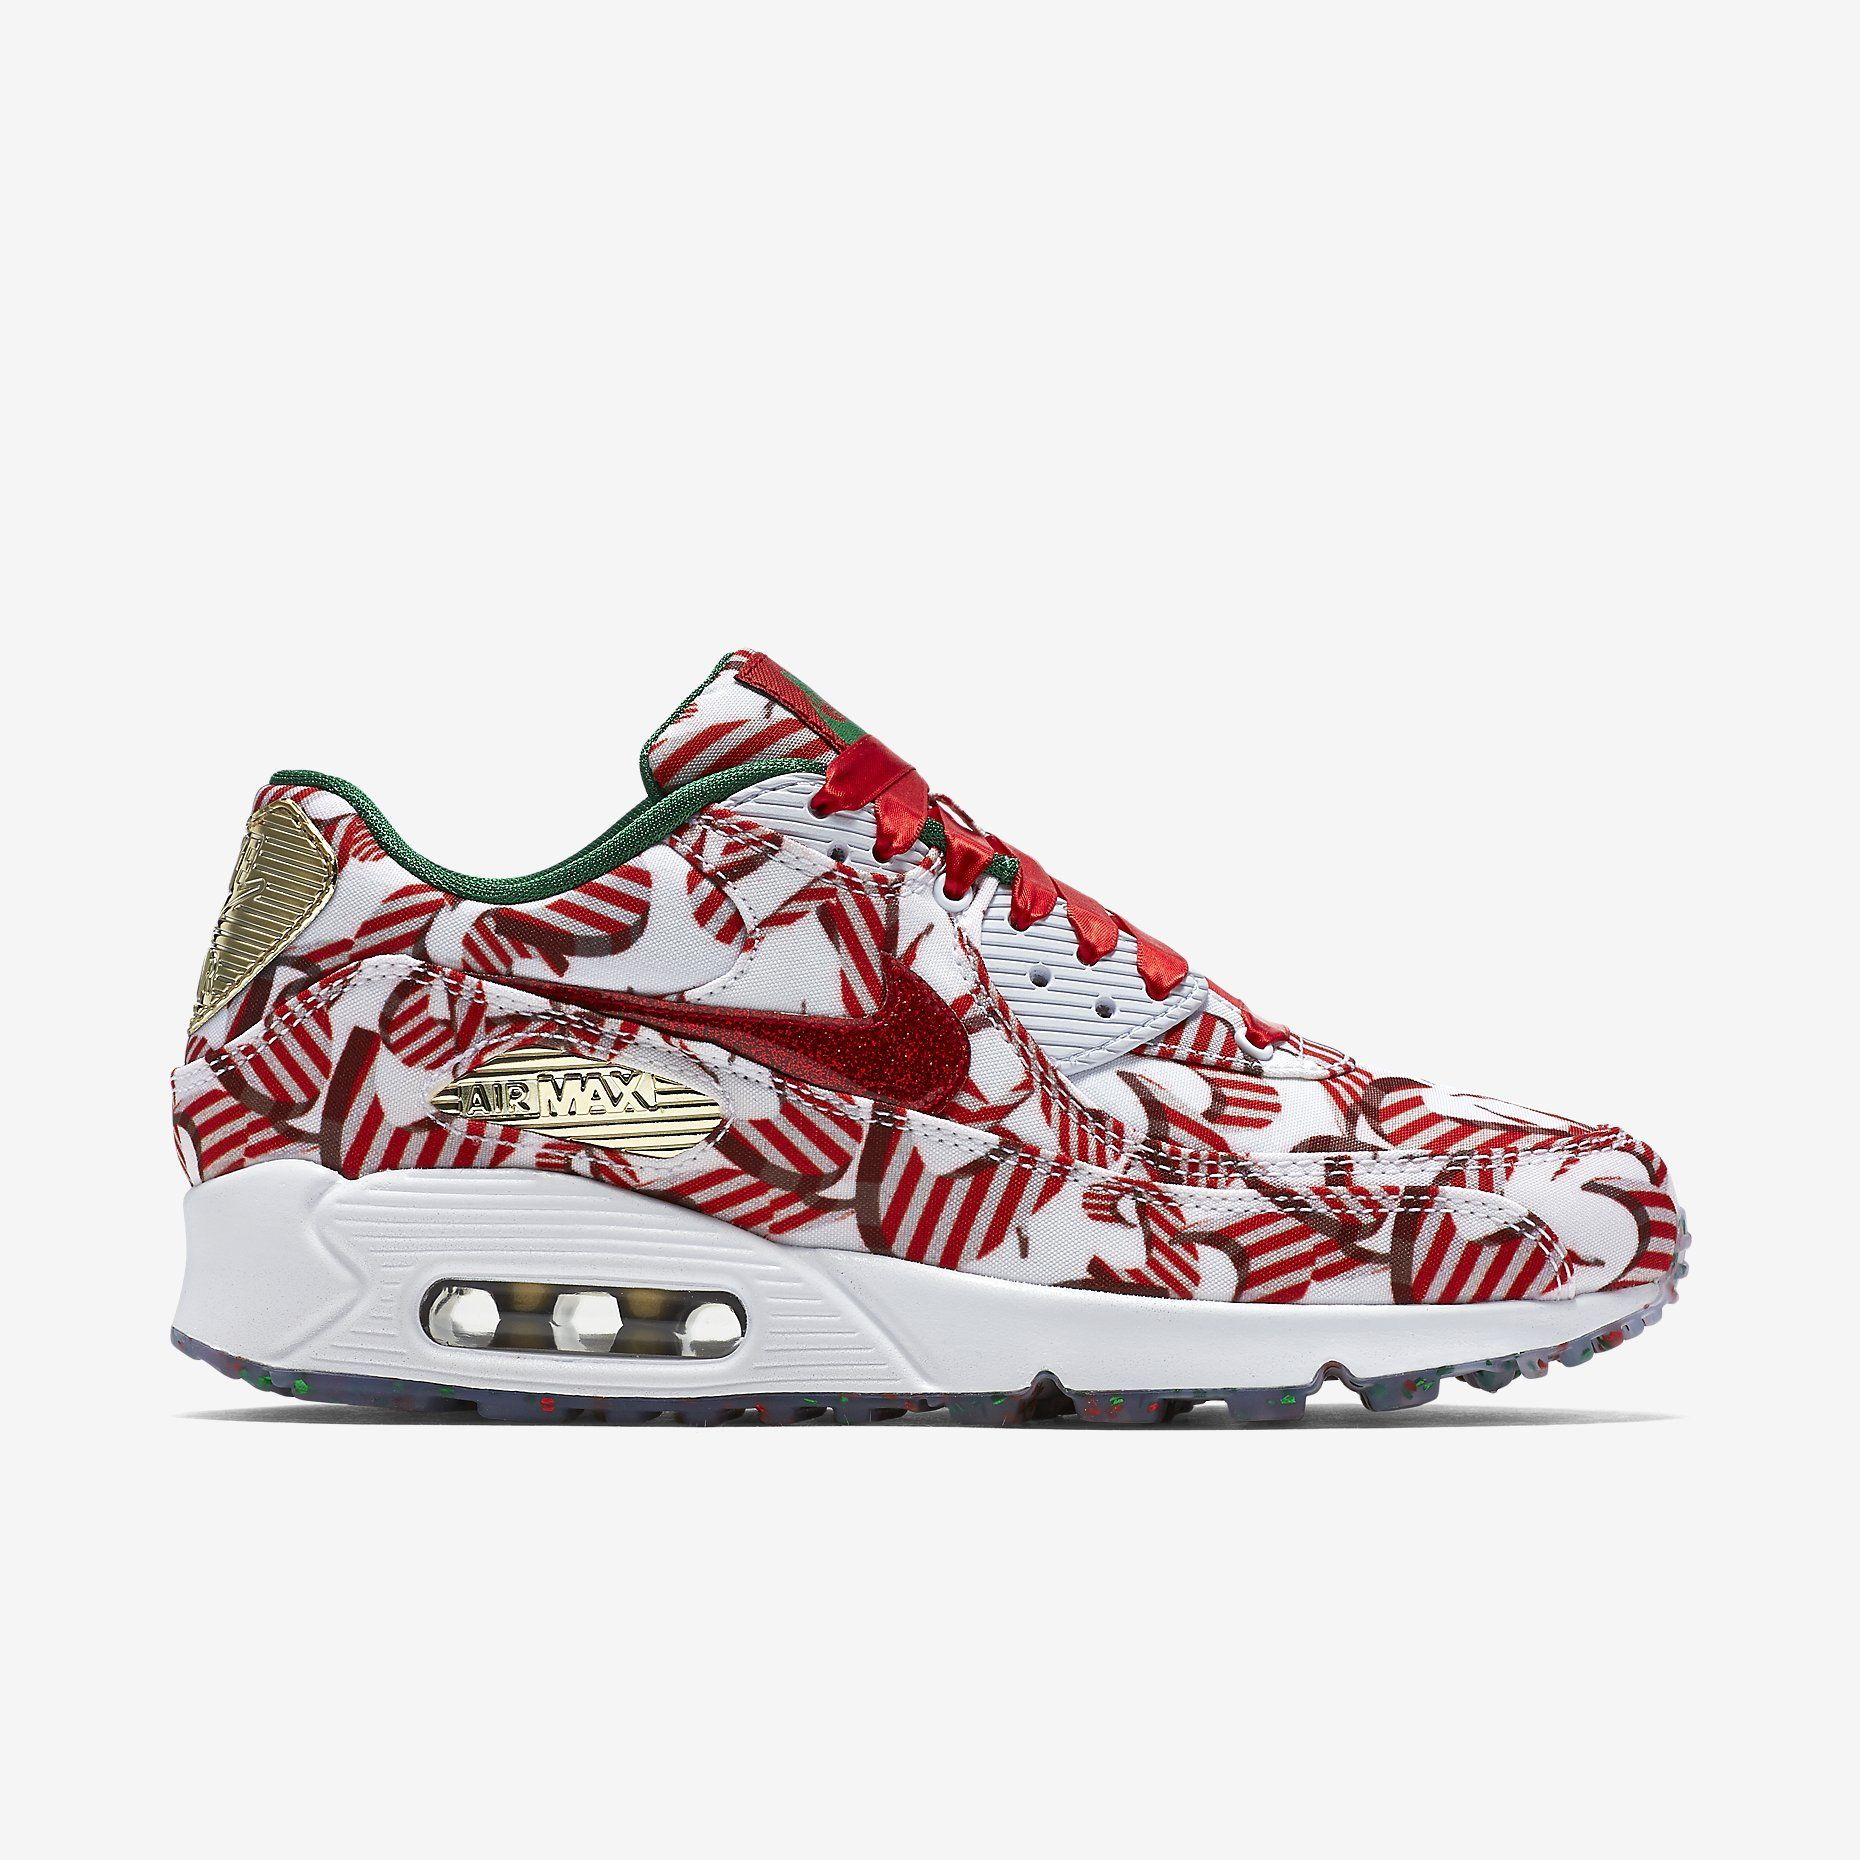 low priced e139b 954b4 Un vent printanier souffle sur la AirMax. The latest in holiday footwear. Nike  Air Max 90